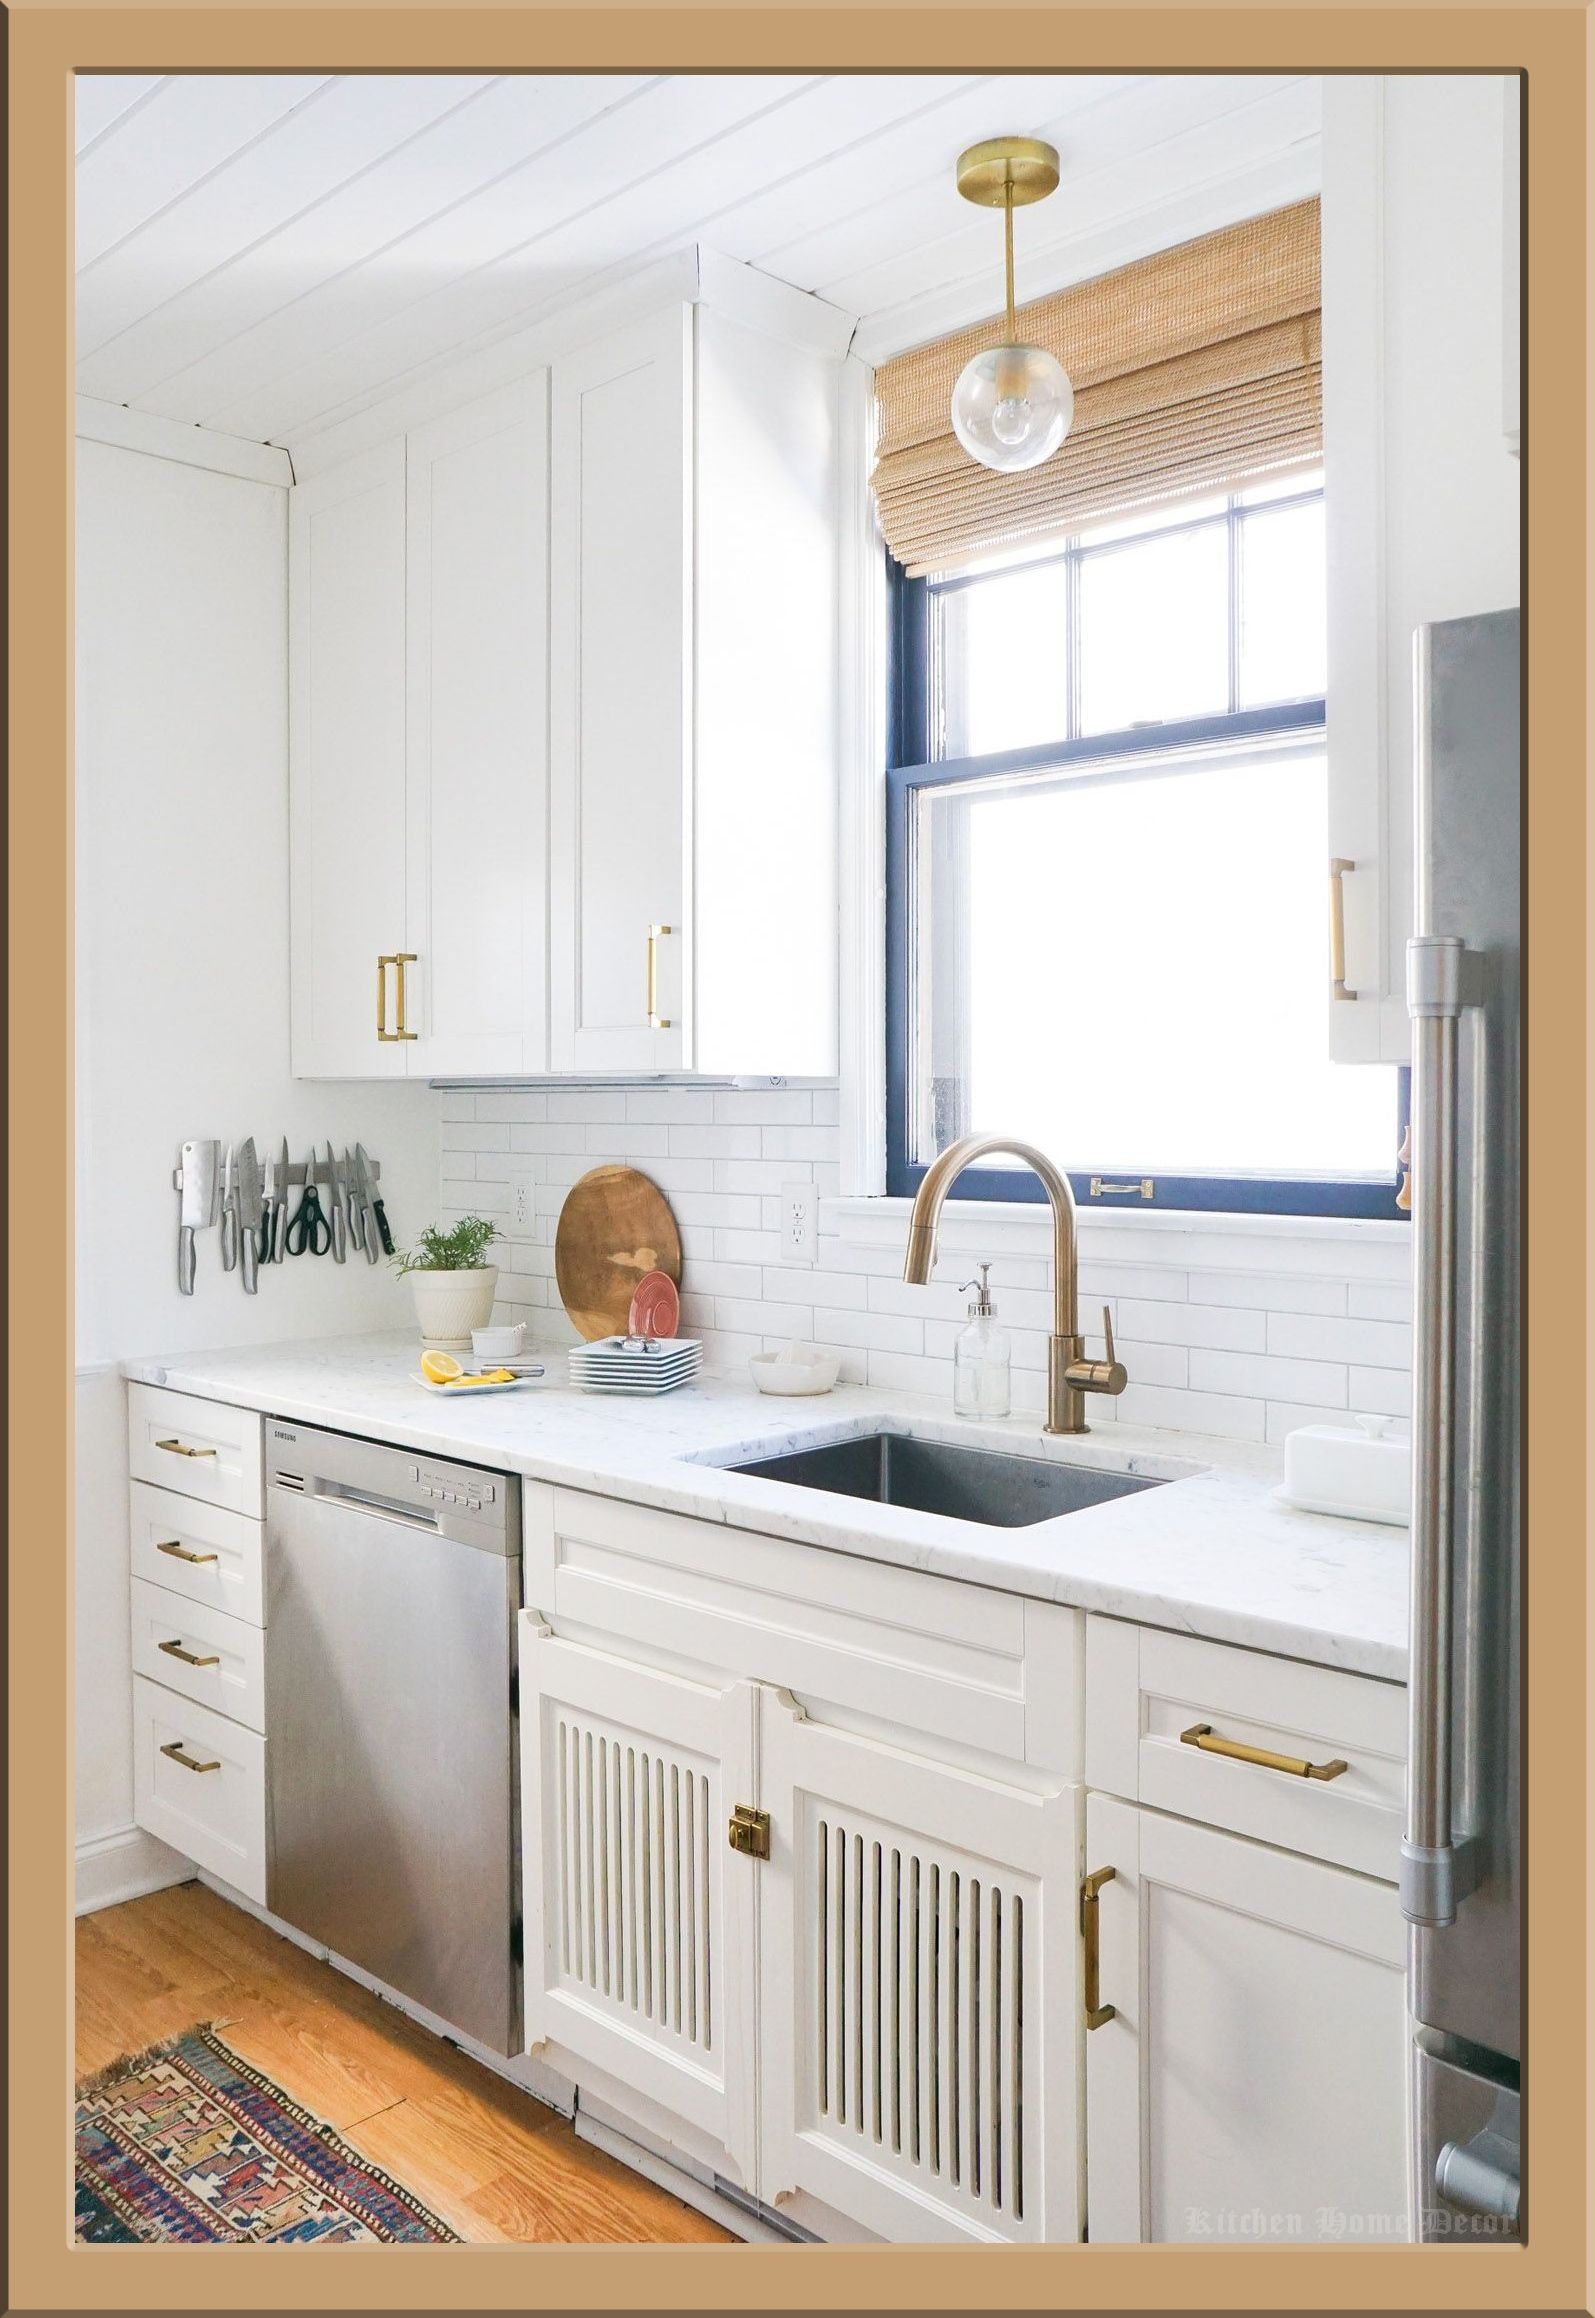 Need More Time? Read These Tips To Eliminate Kitchen Decor